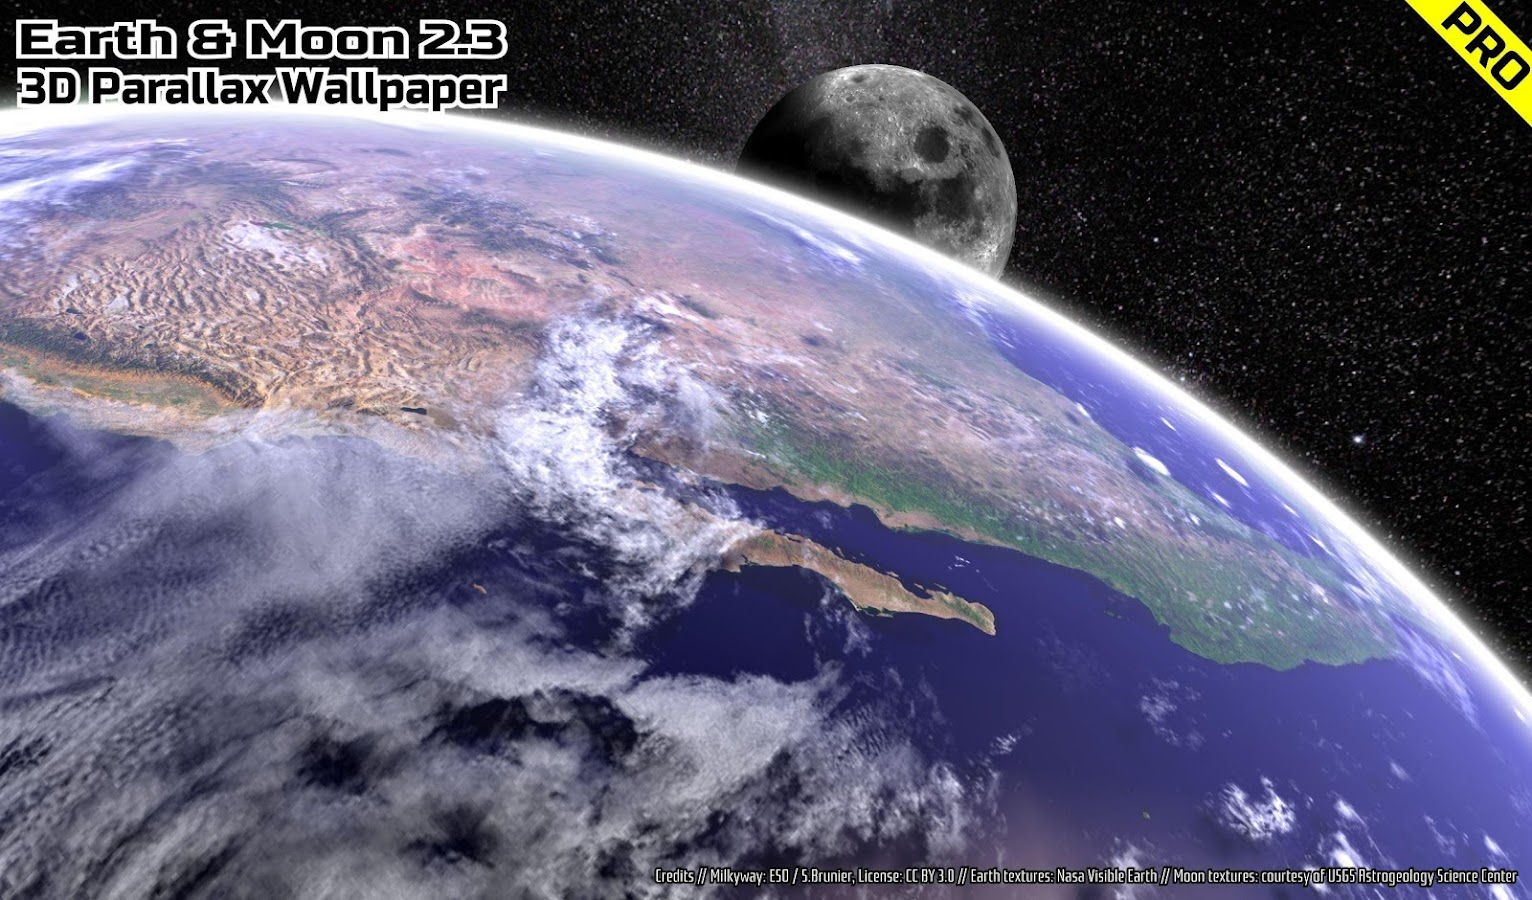 3d Parallax Weather Live Wallpaper Earth Amp Moon In Hd Gyro 3d Pro Parallax Wallpaper